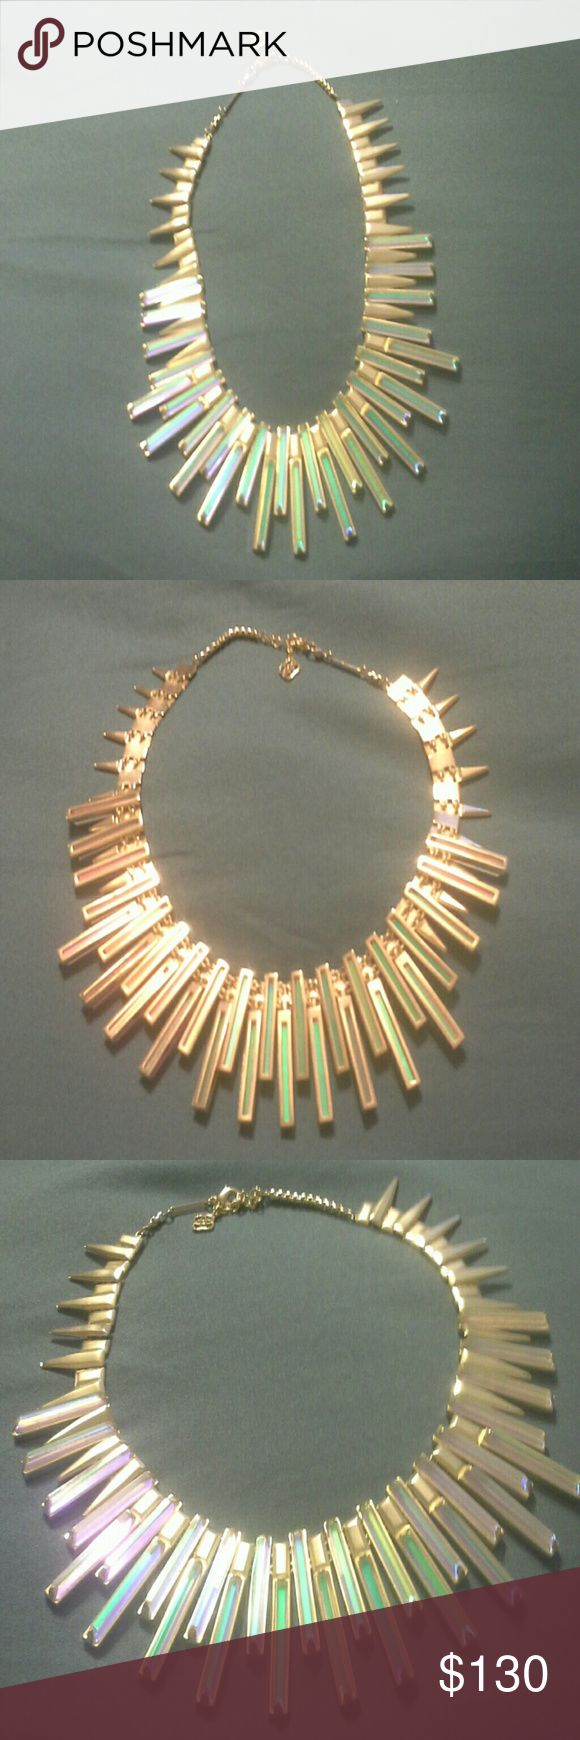 Kendra Scott Kaplan necklace Great looking piece of jewelry. .. used a handful of times.  Comes with KS storage bag. Kendra Scott Jewelry Necklaces